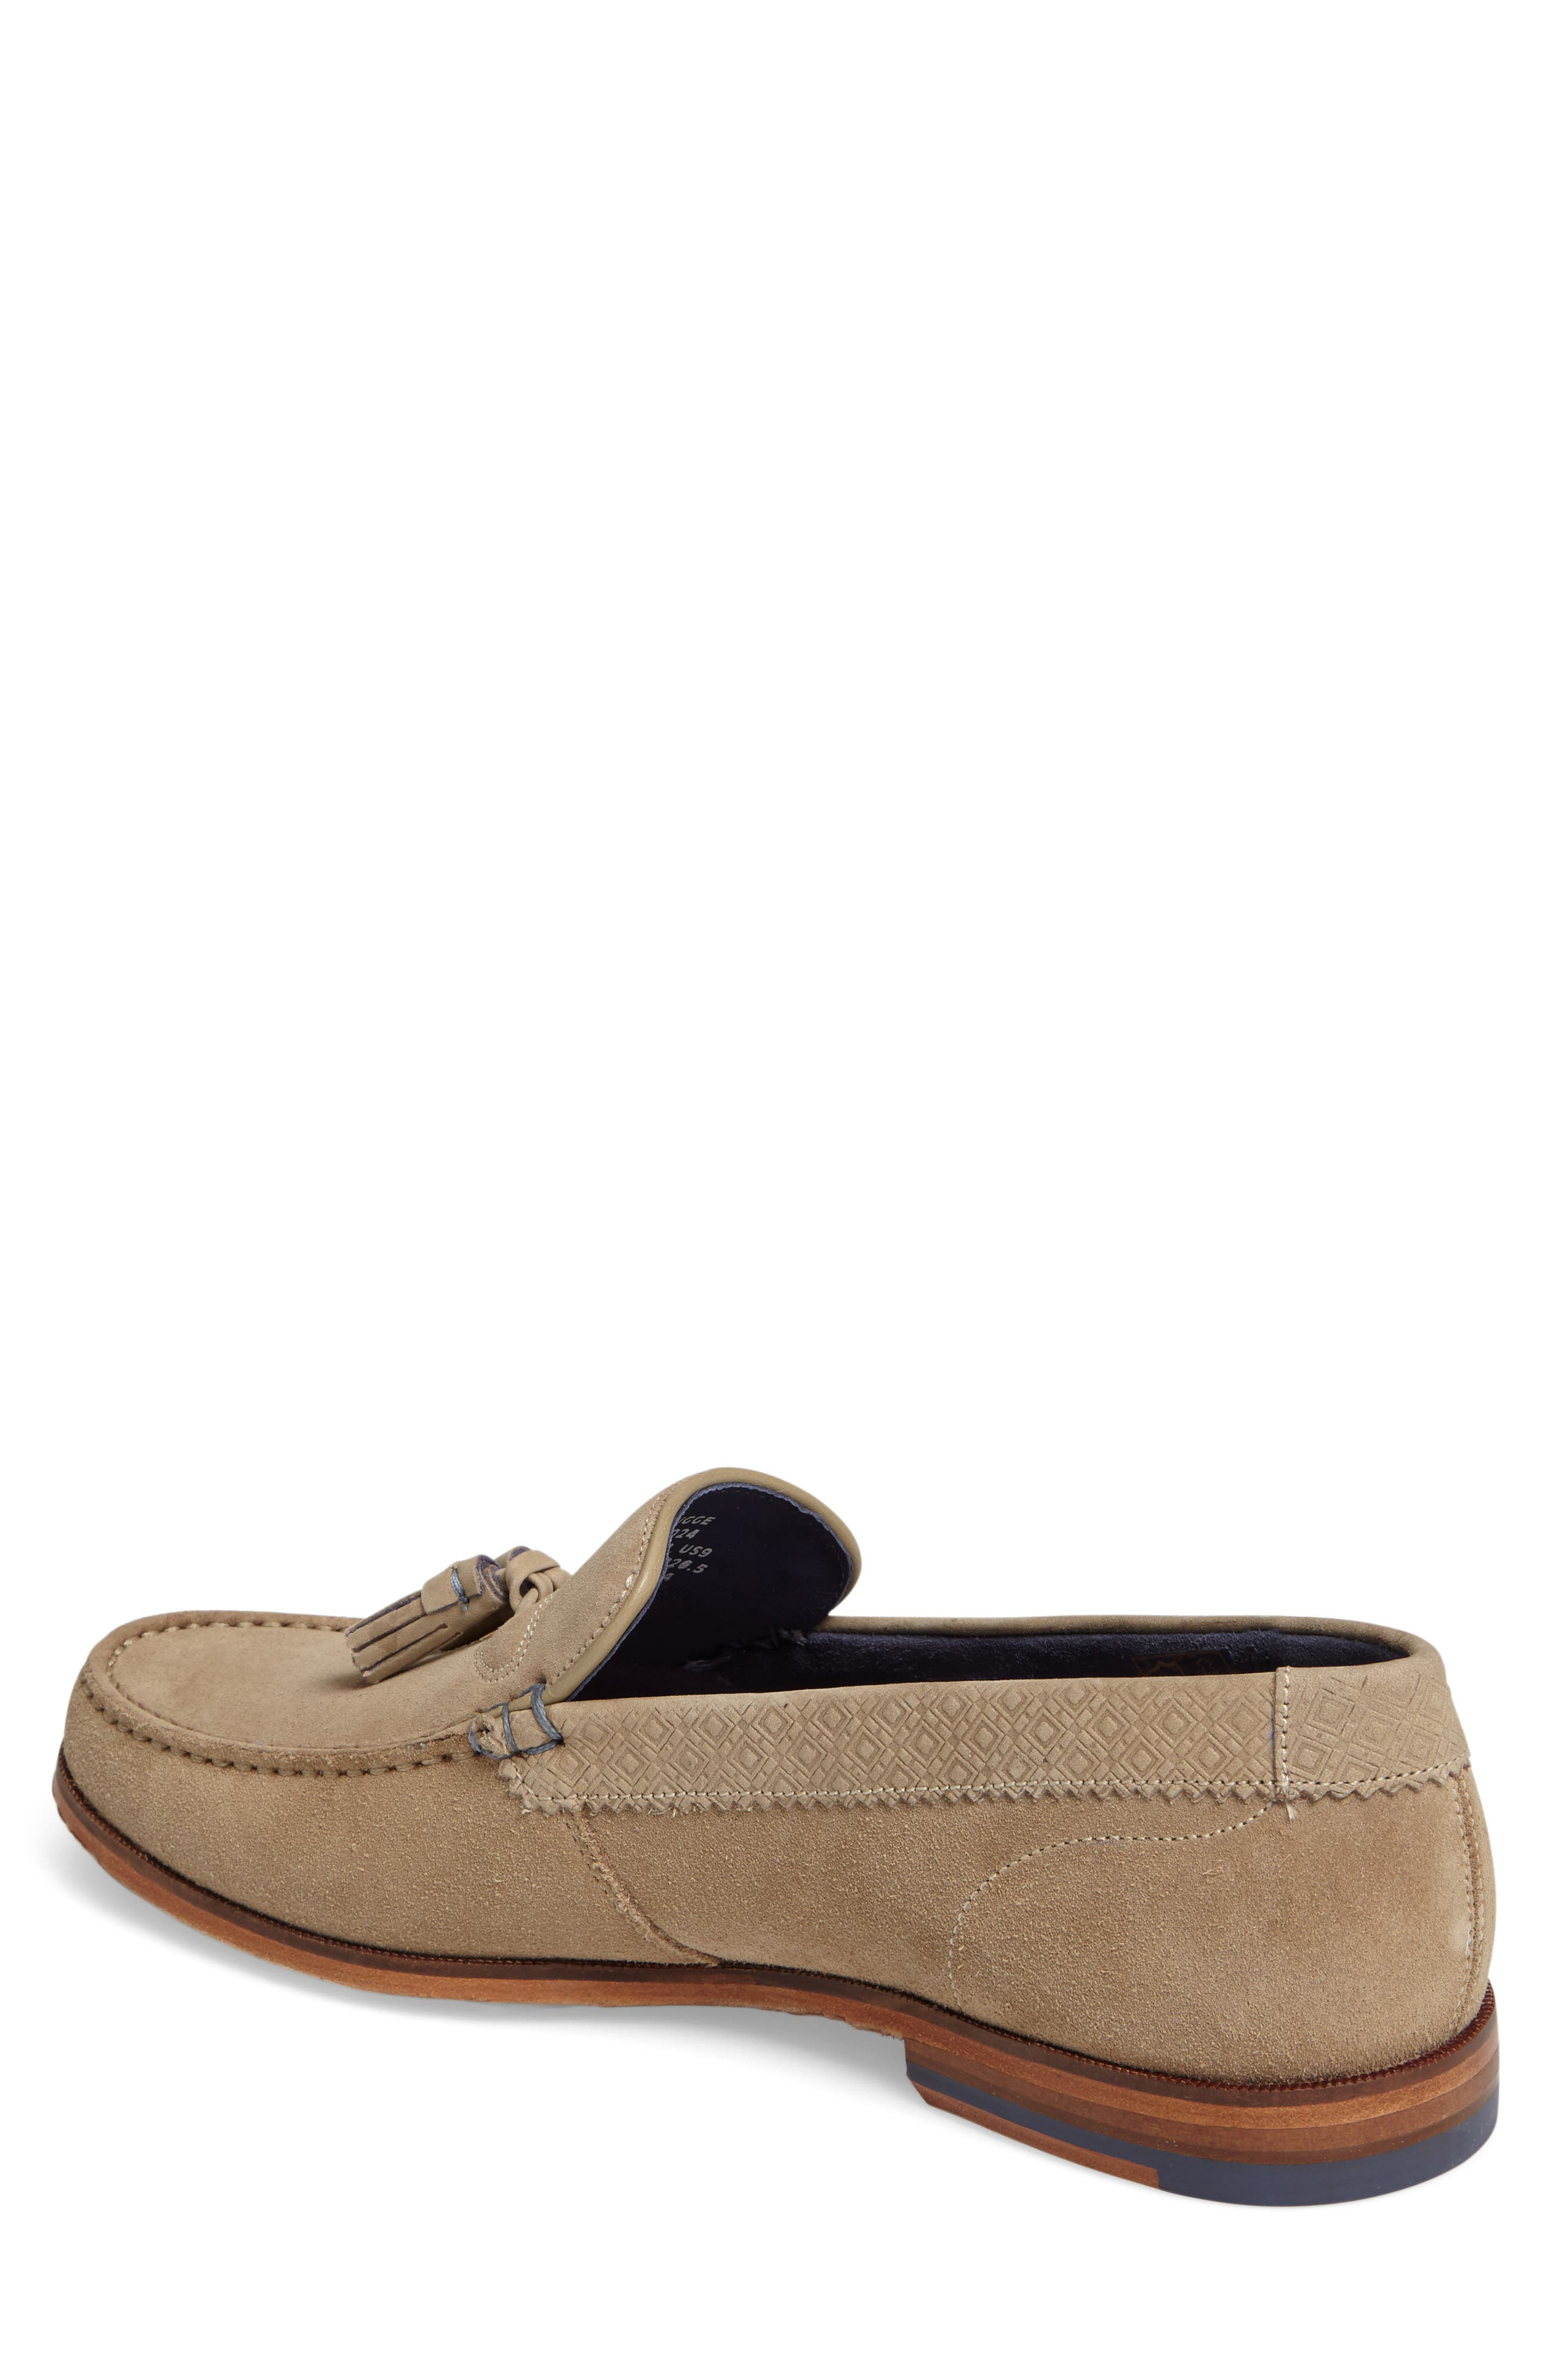 Dougge Tassel Loafer,                             Alternate thumbnail 7, color,